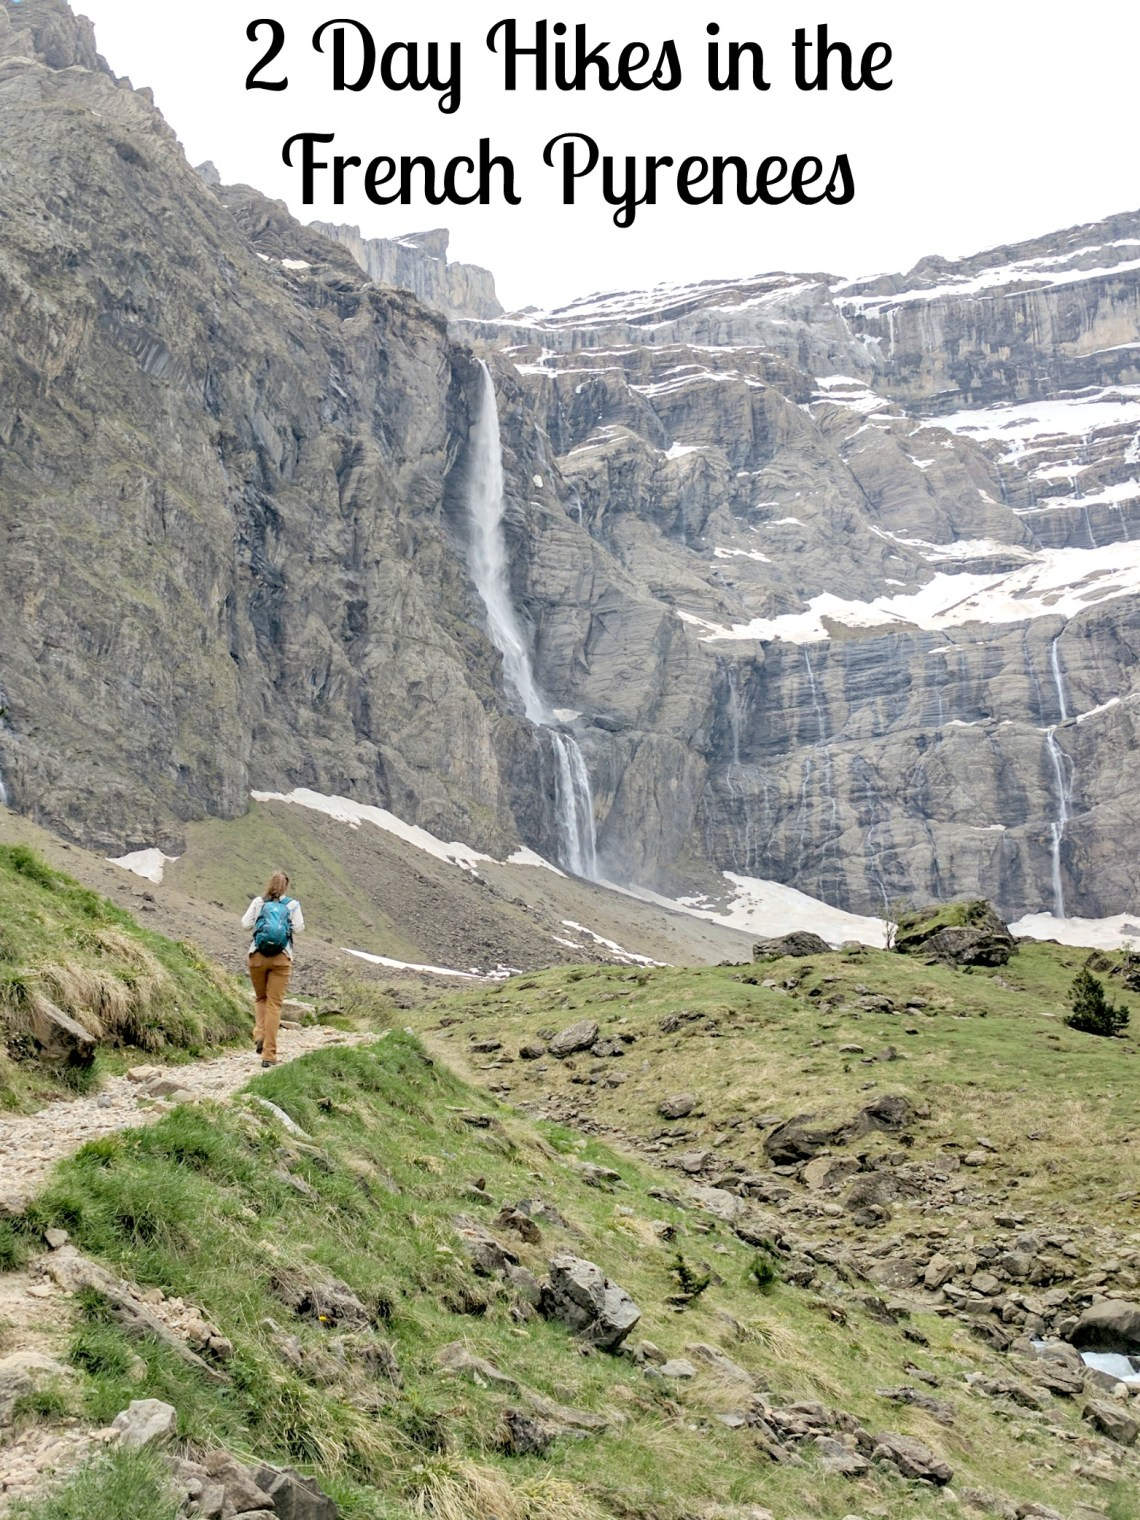 Pinterest image for 2 Day Hikes in the French Pyrenees